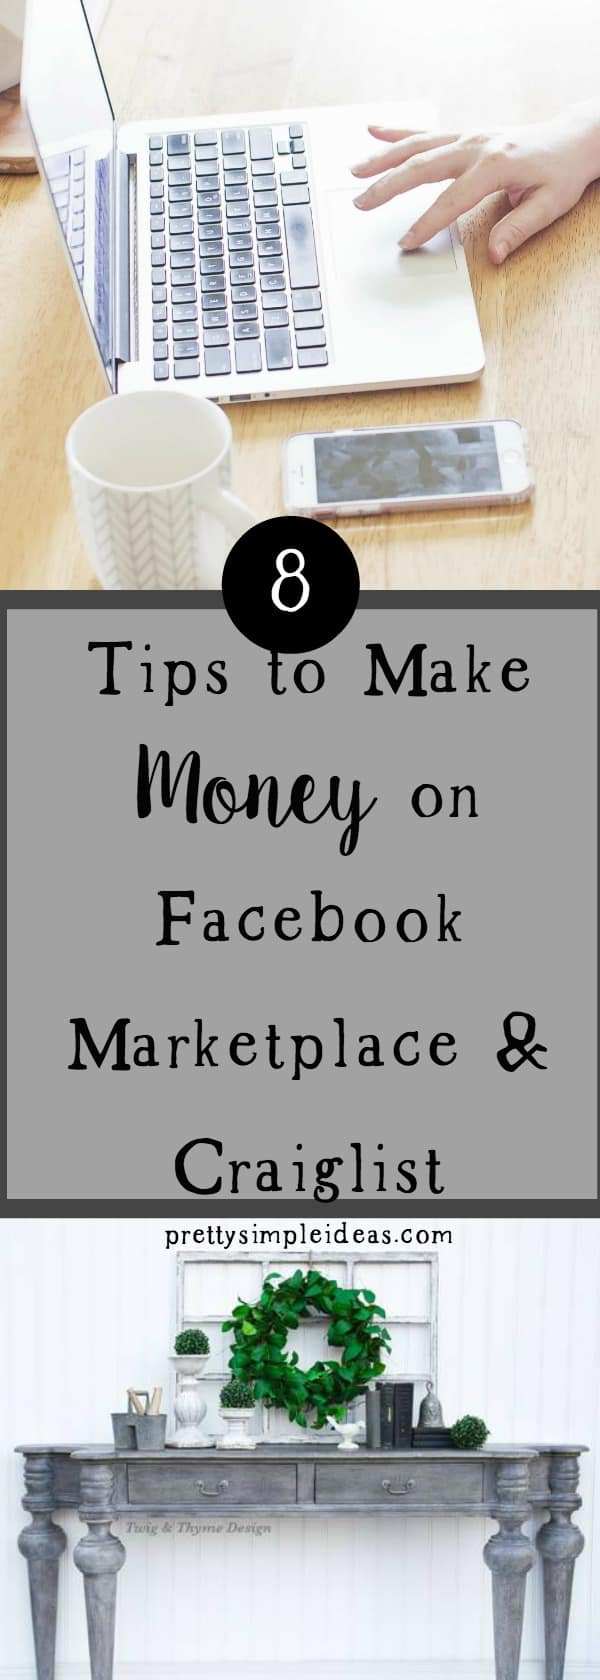 Tips to Make Money on Facebook Marketplace & Craigslist